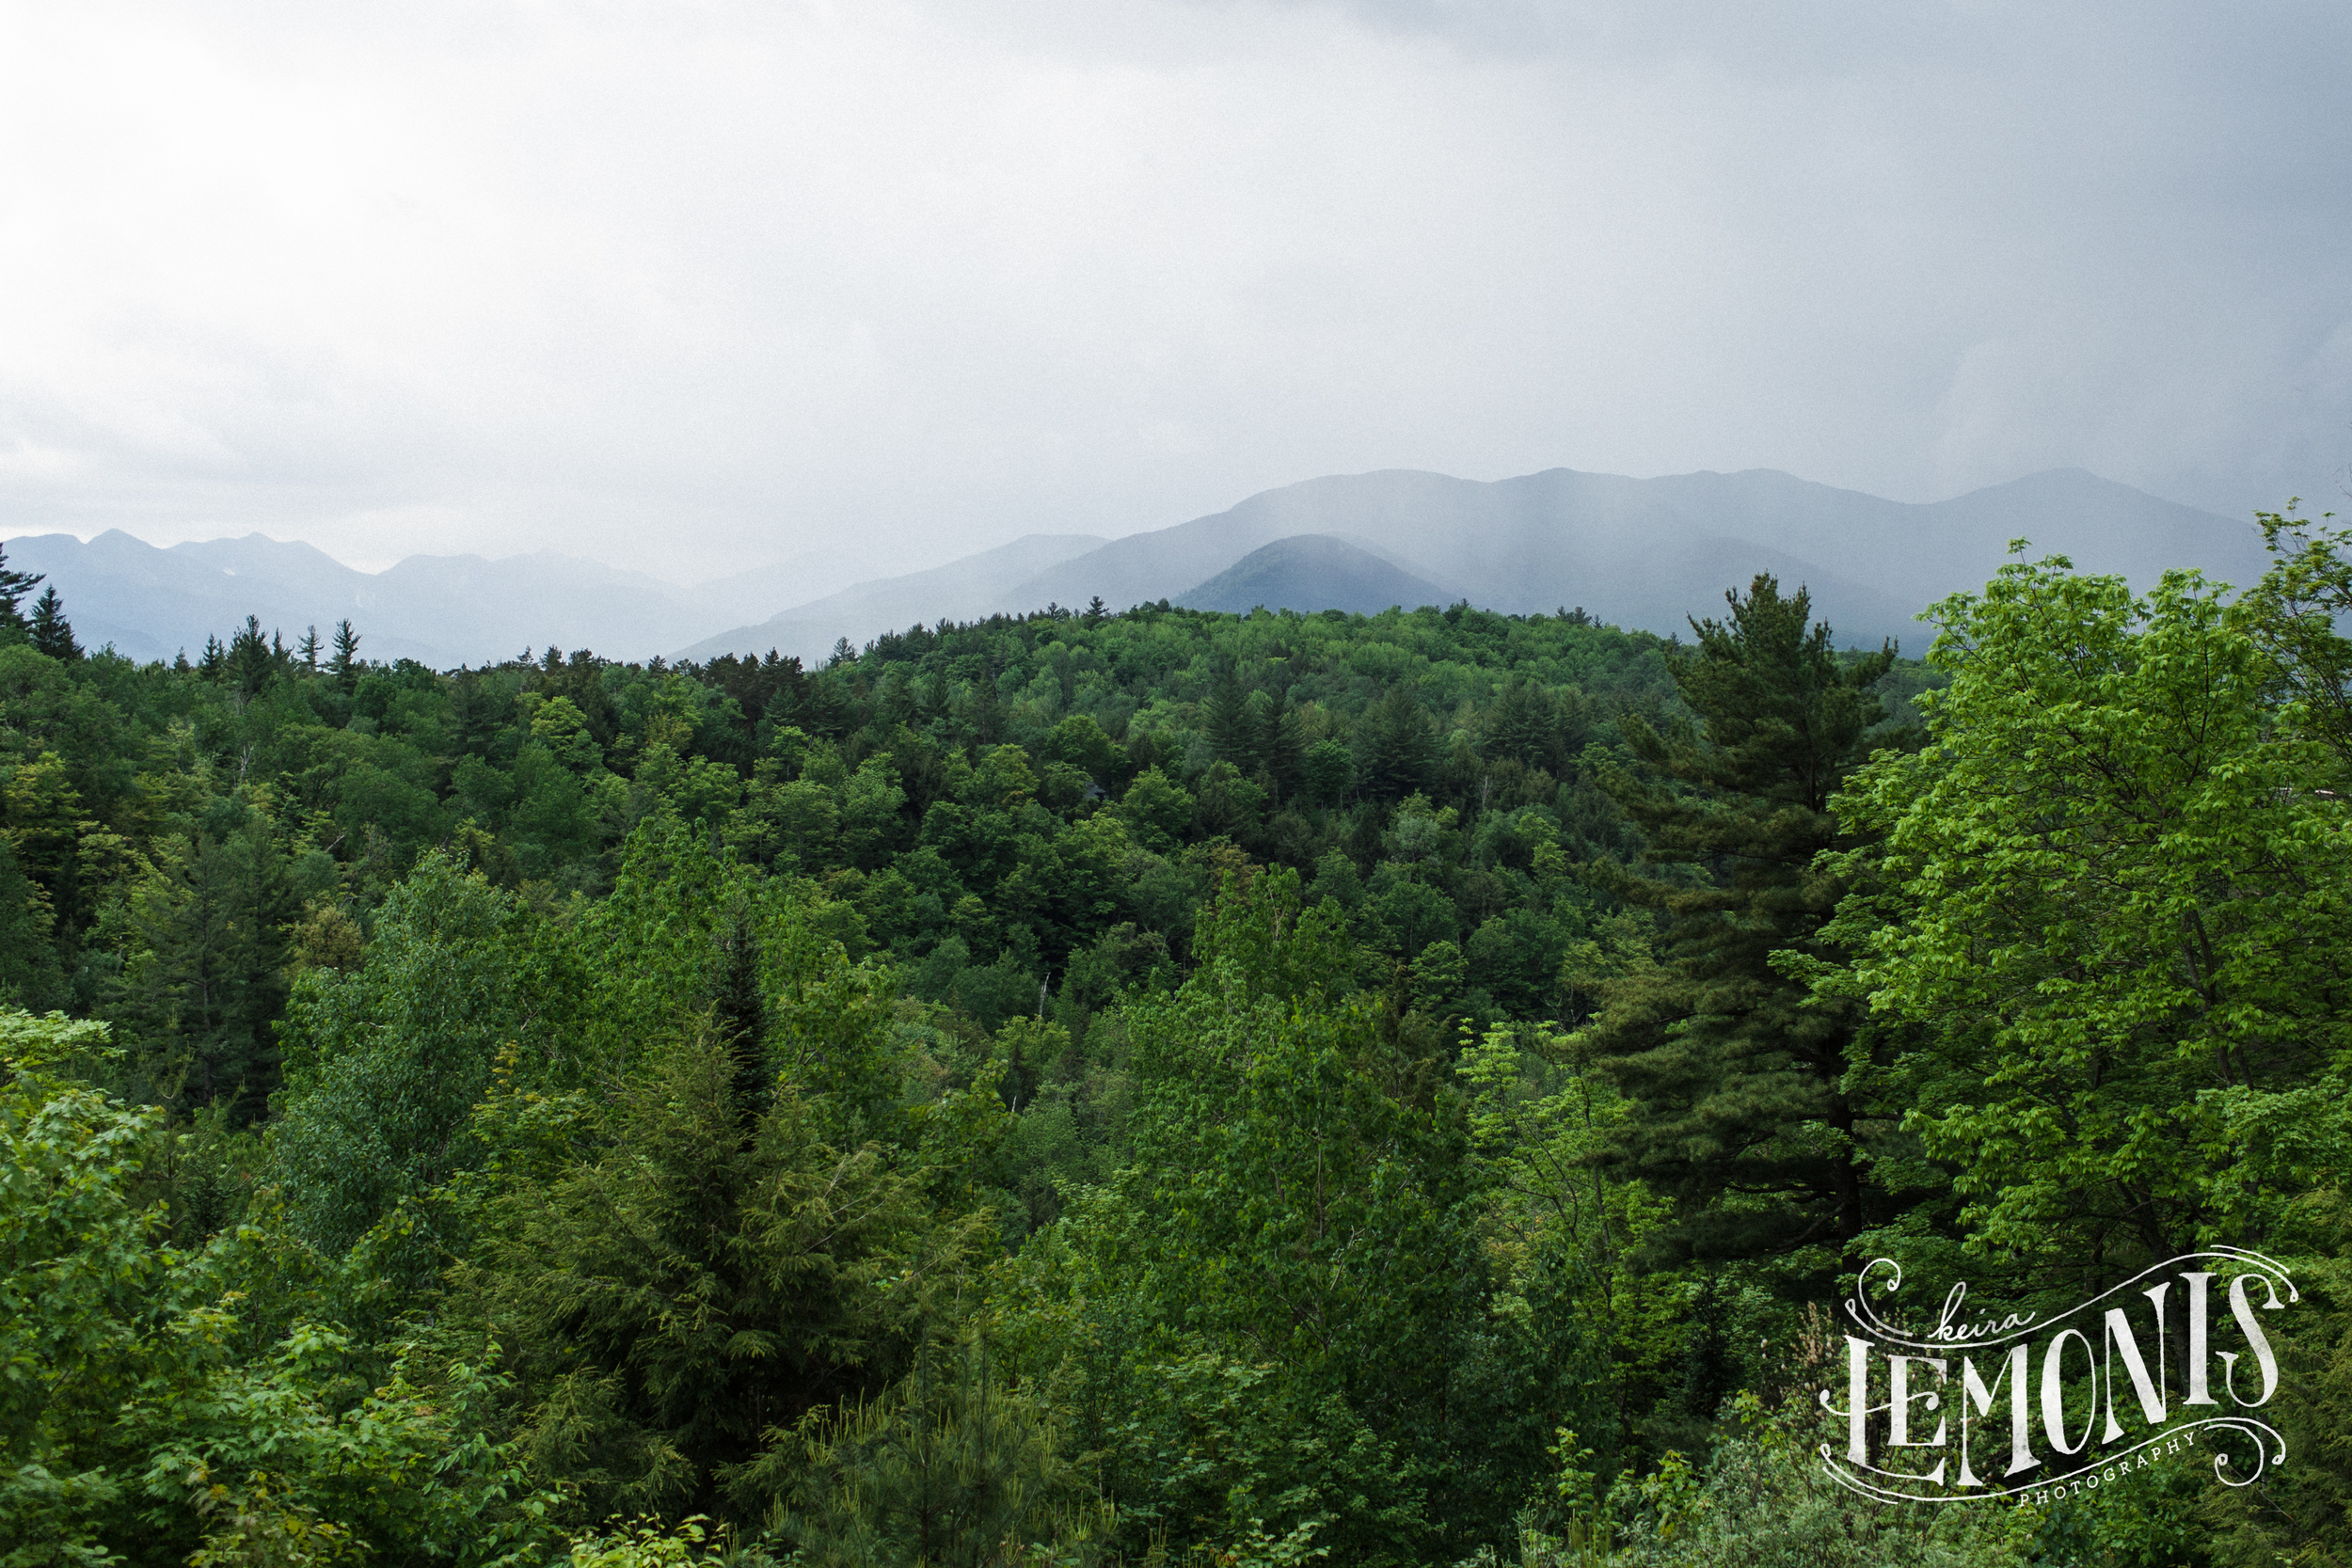 The rain moved in just as we were finishing up portraits... perfect timing! Look at that view!